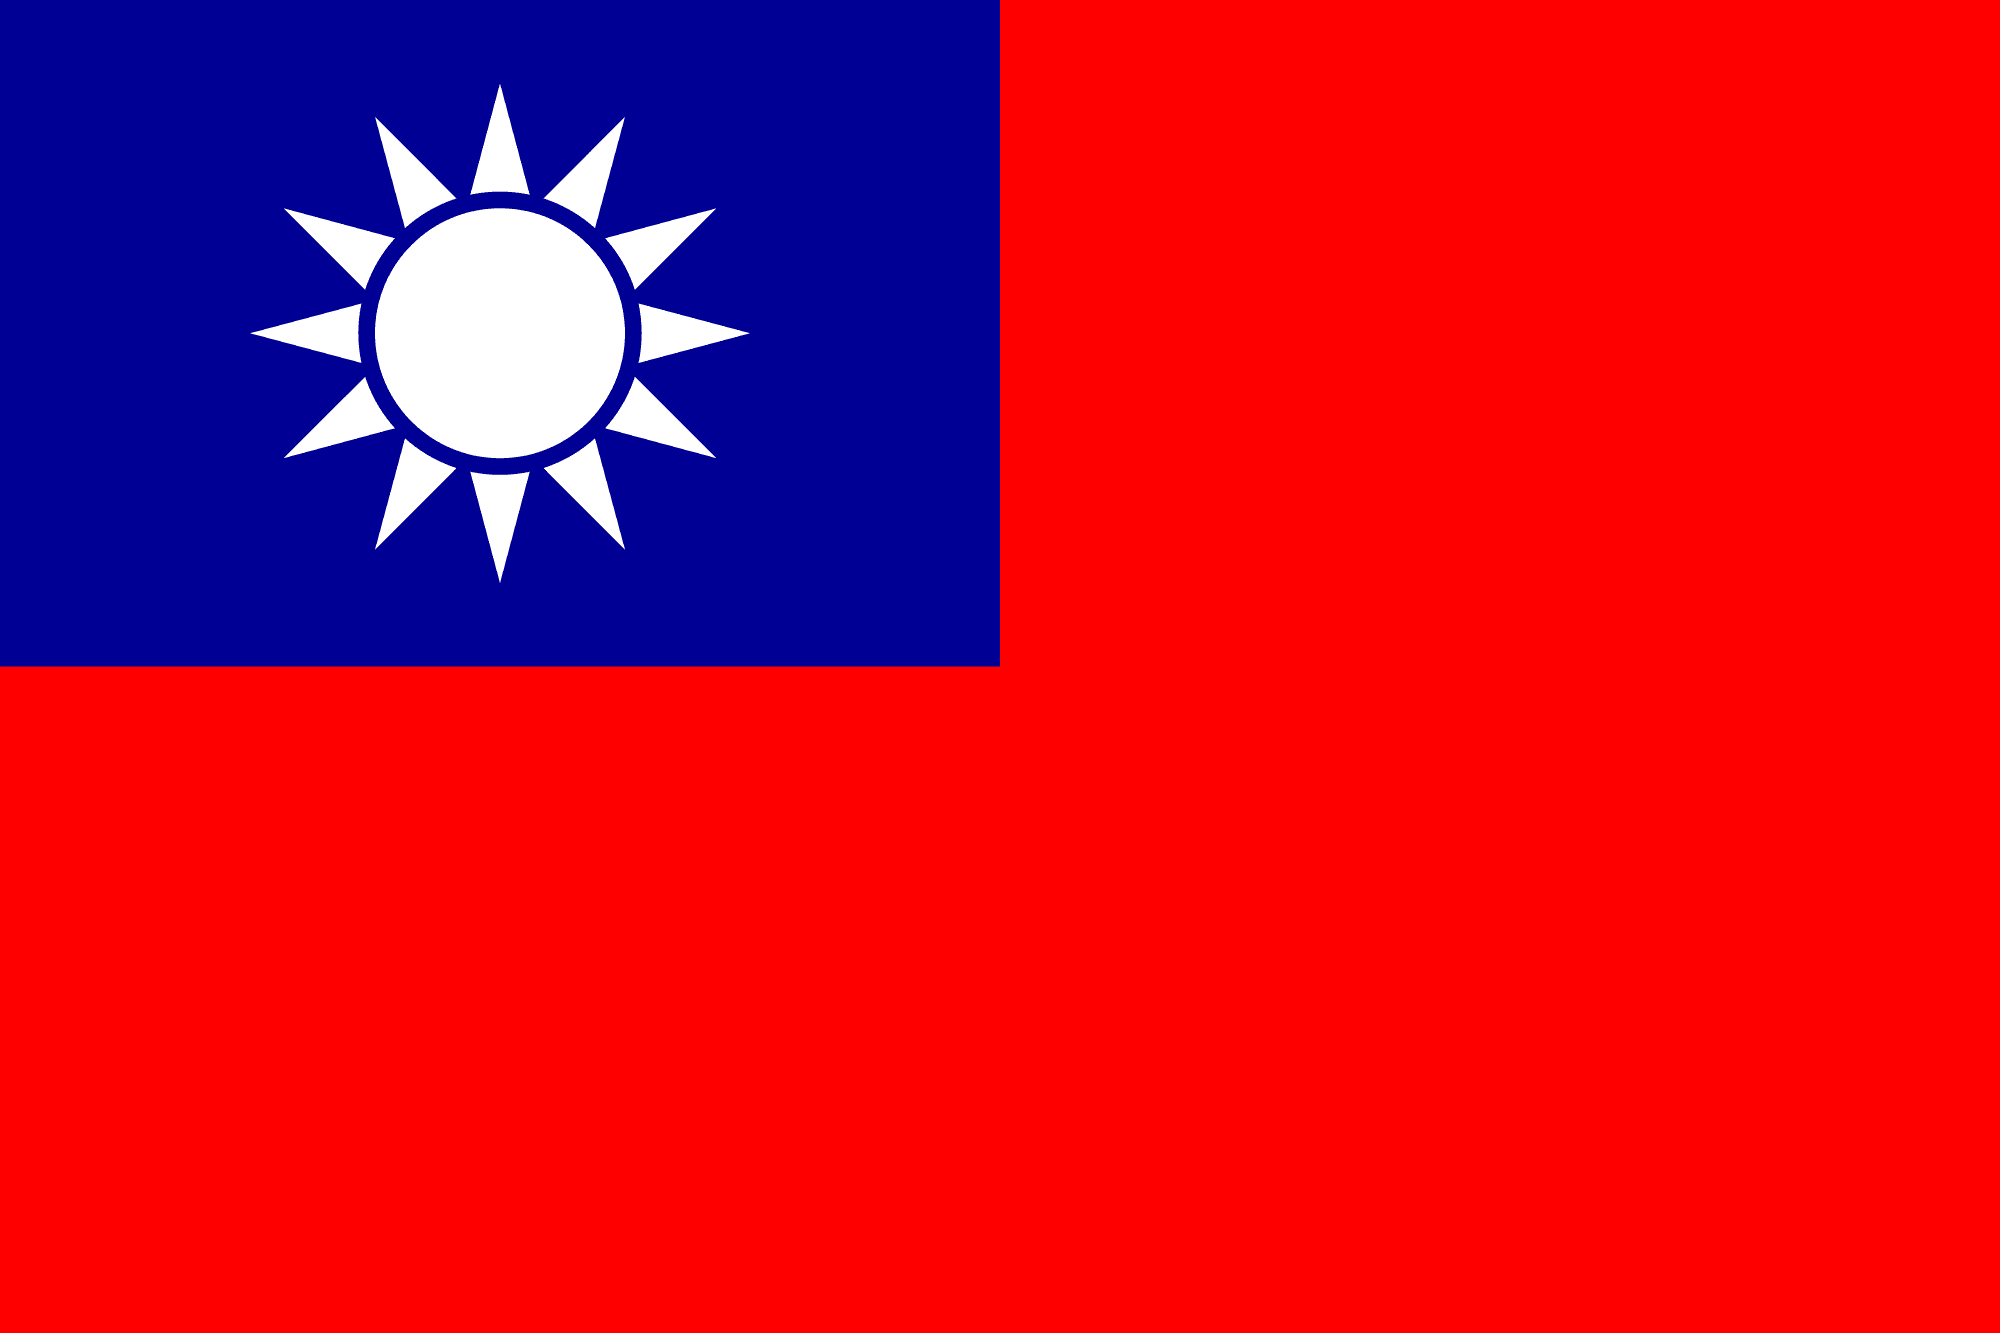 中華民國國旗 Republic of China National Flag